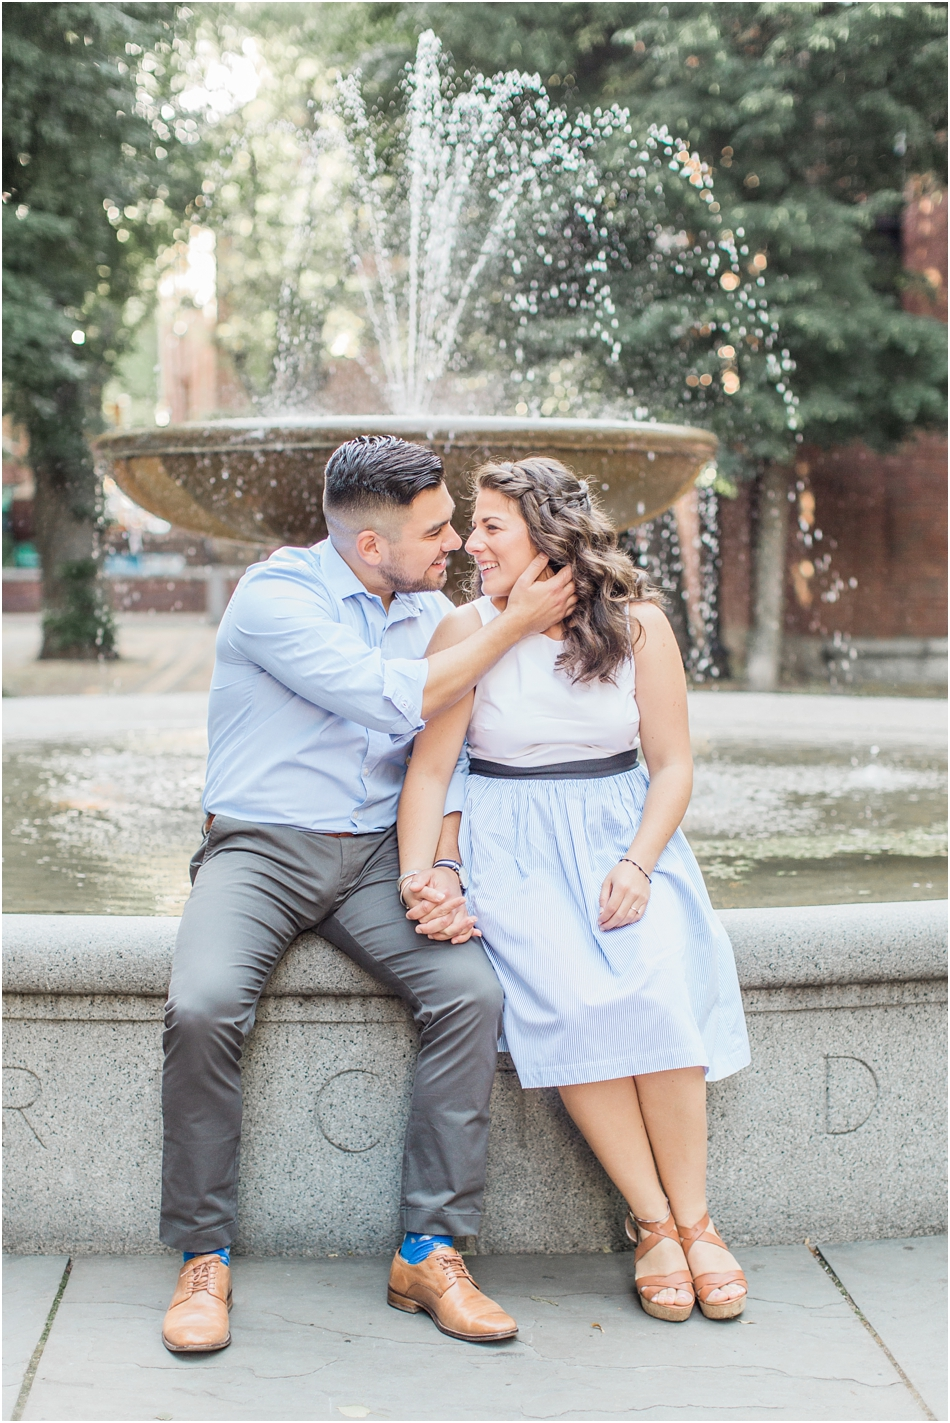 north_end_downtown_pizza_little_italy_engagement_boston_massachusetts_cape_cod_new_england_wedding_photographer_Meredith_Jane_Photography_photo_1764.jpg